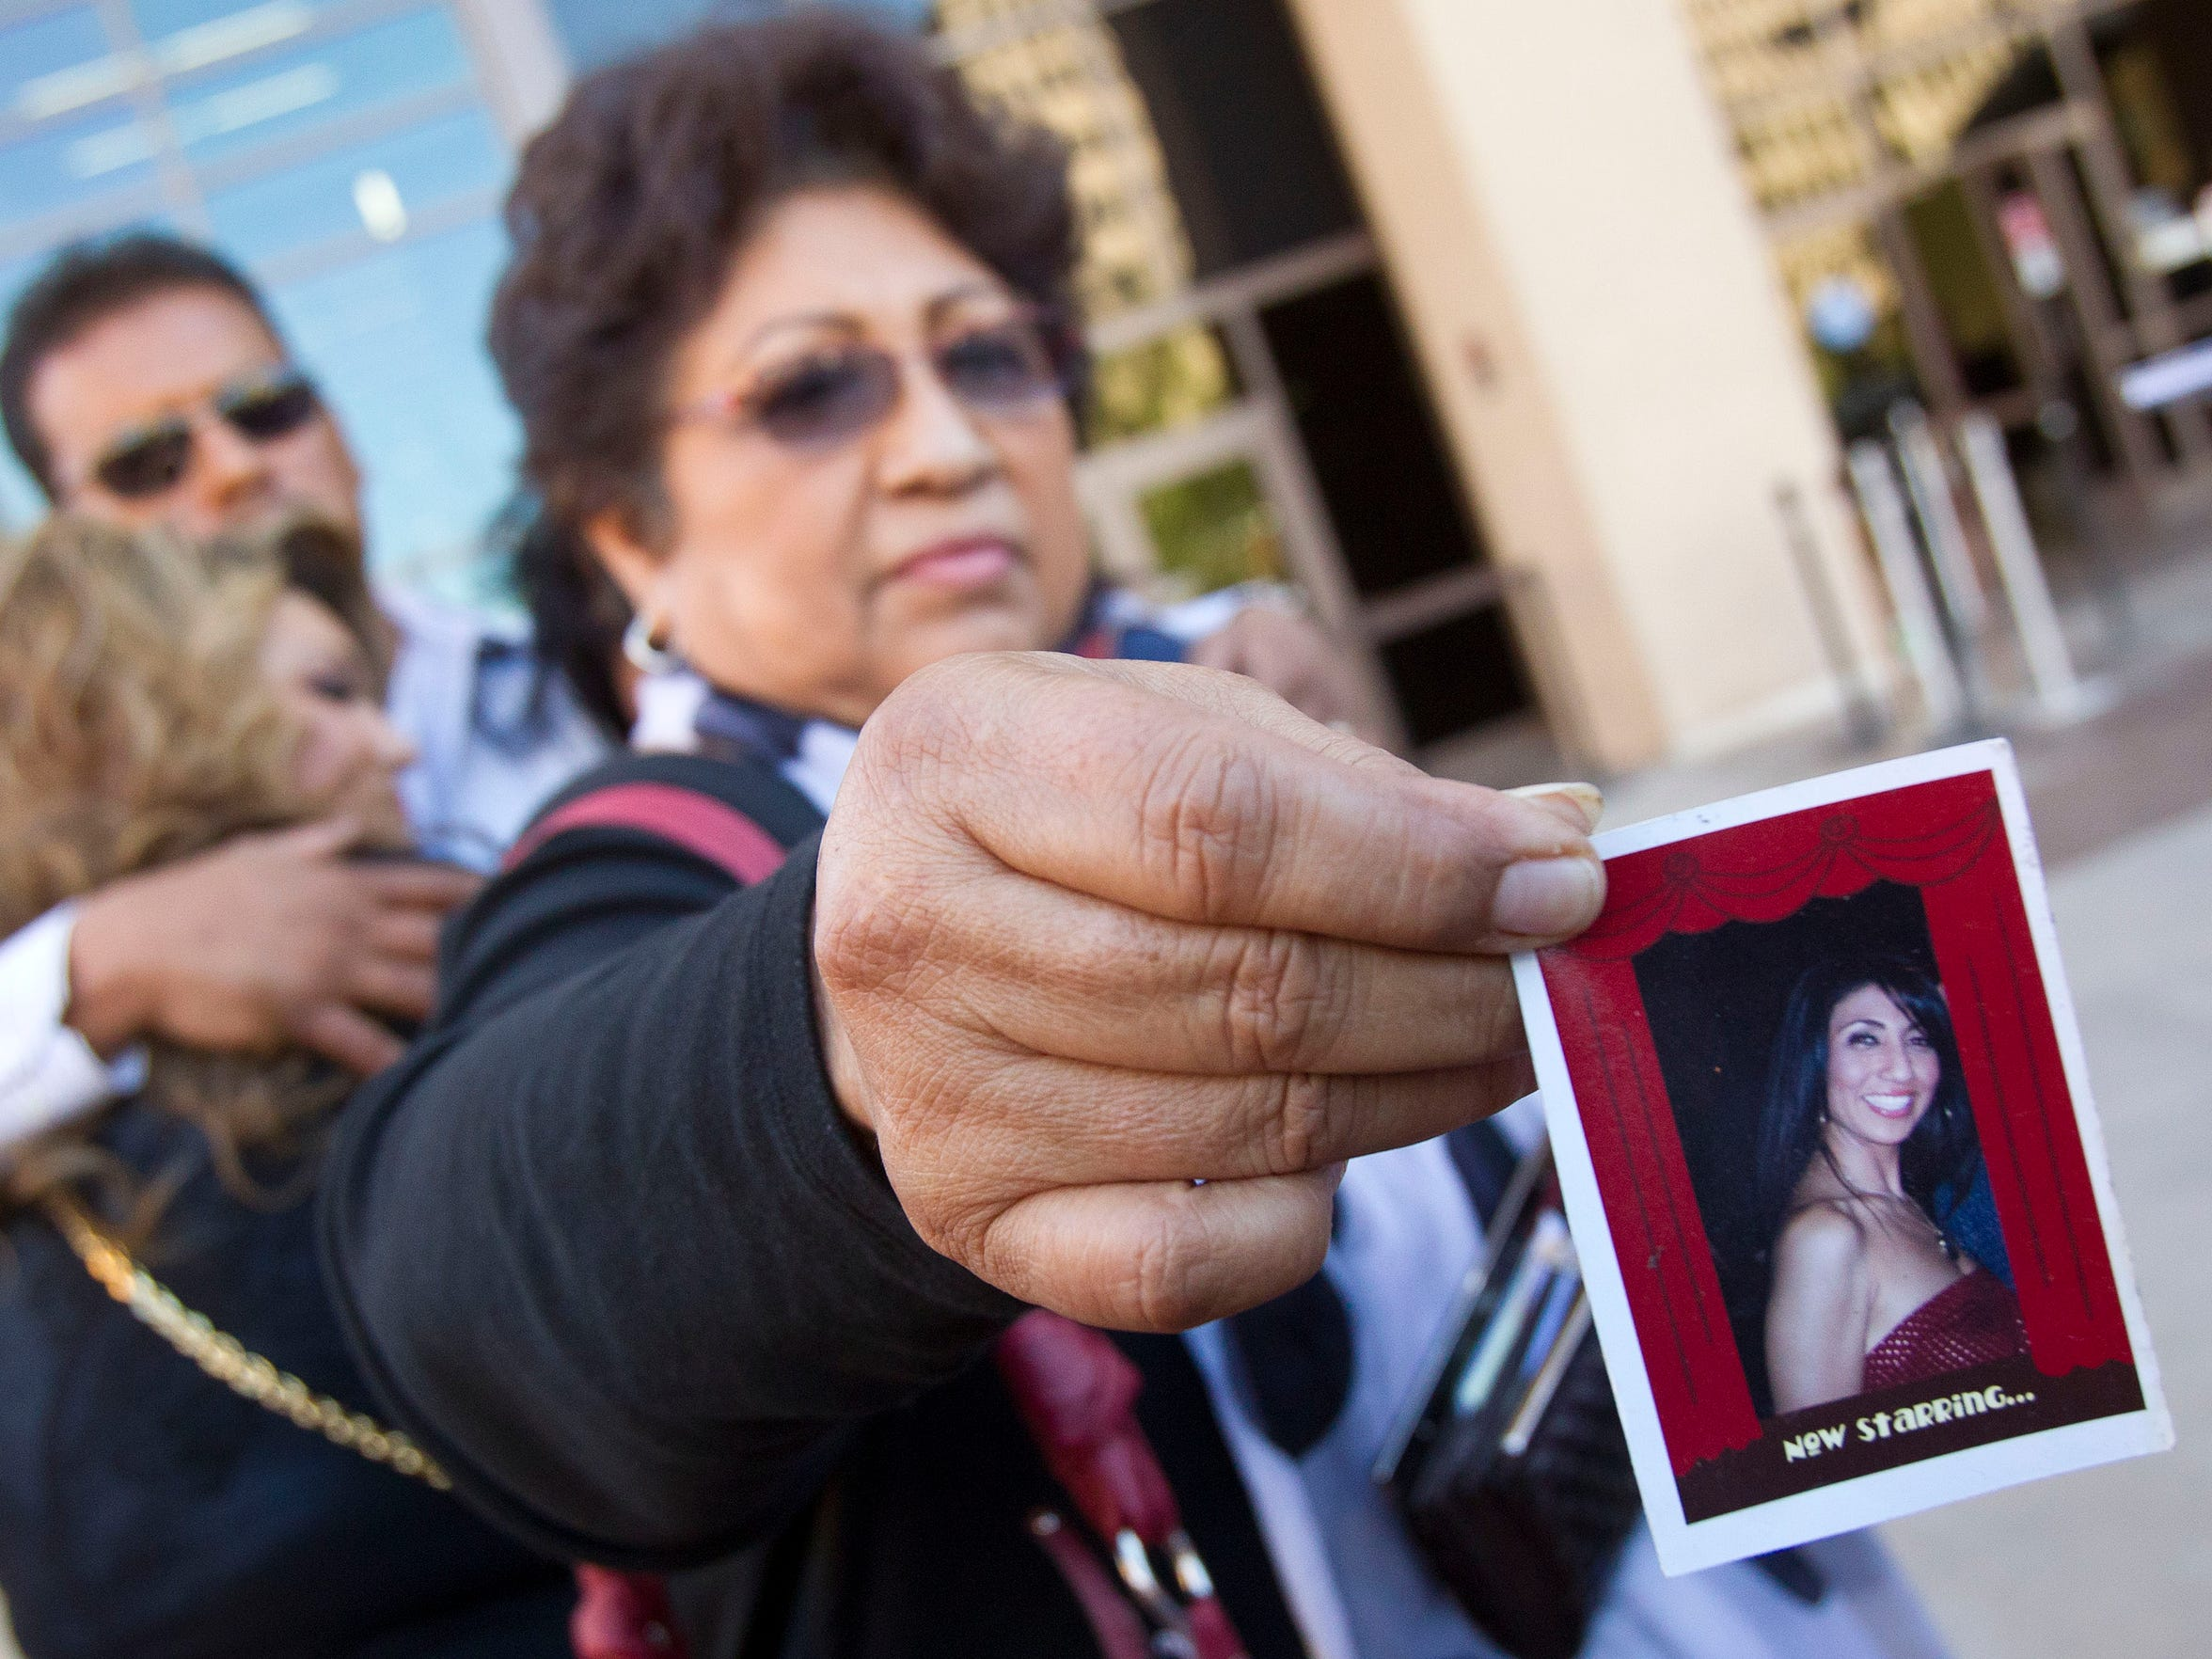 Maria Nuñez, mother of Sophia Nuñez, holds up a photo